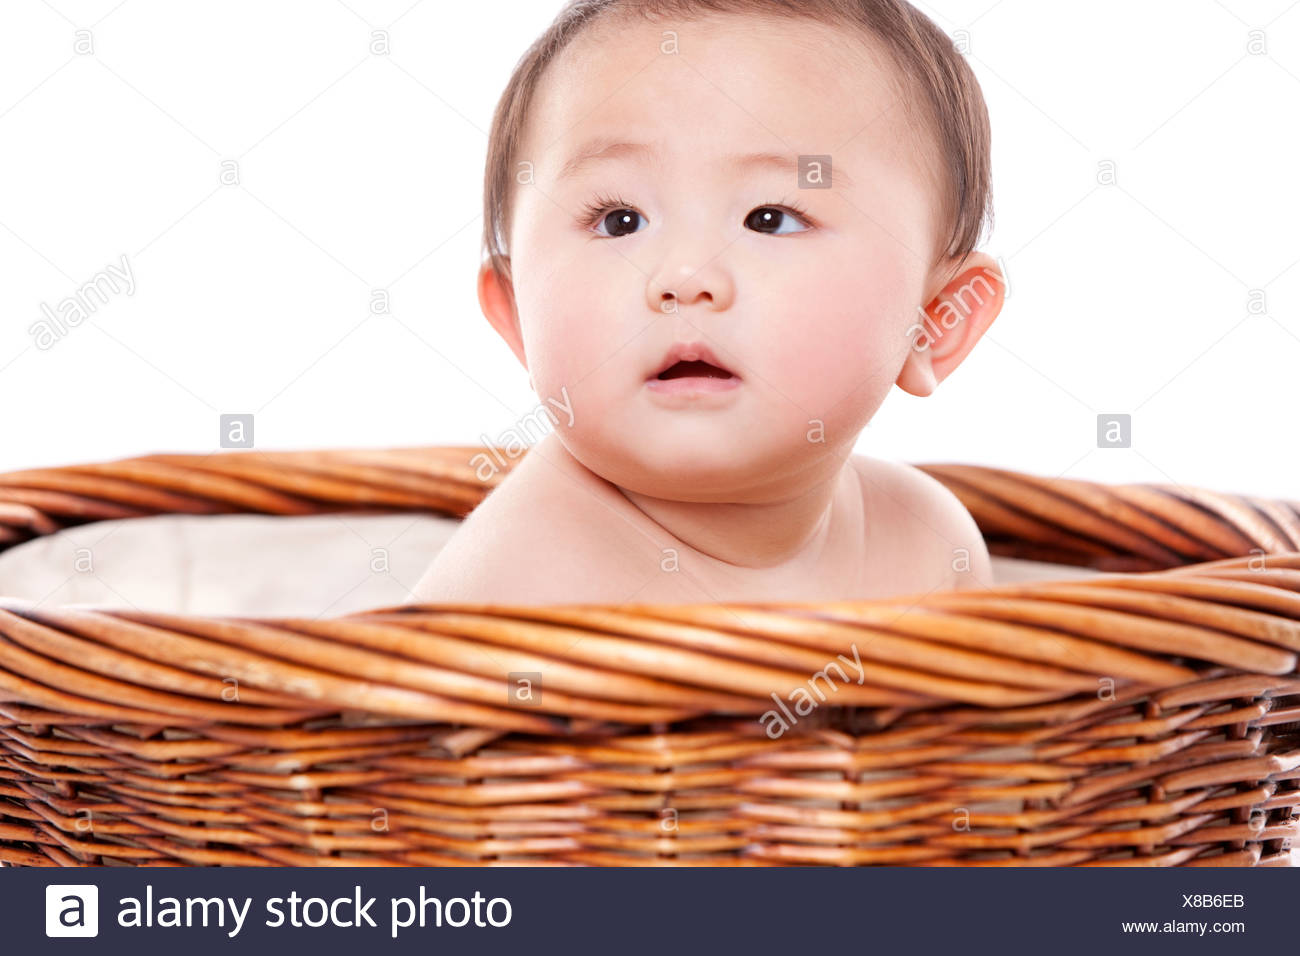 d2450e119 Cute baby girl sitting in basket Stock Photo  280529715 - Alamy